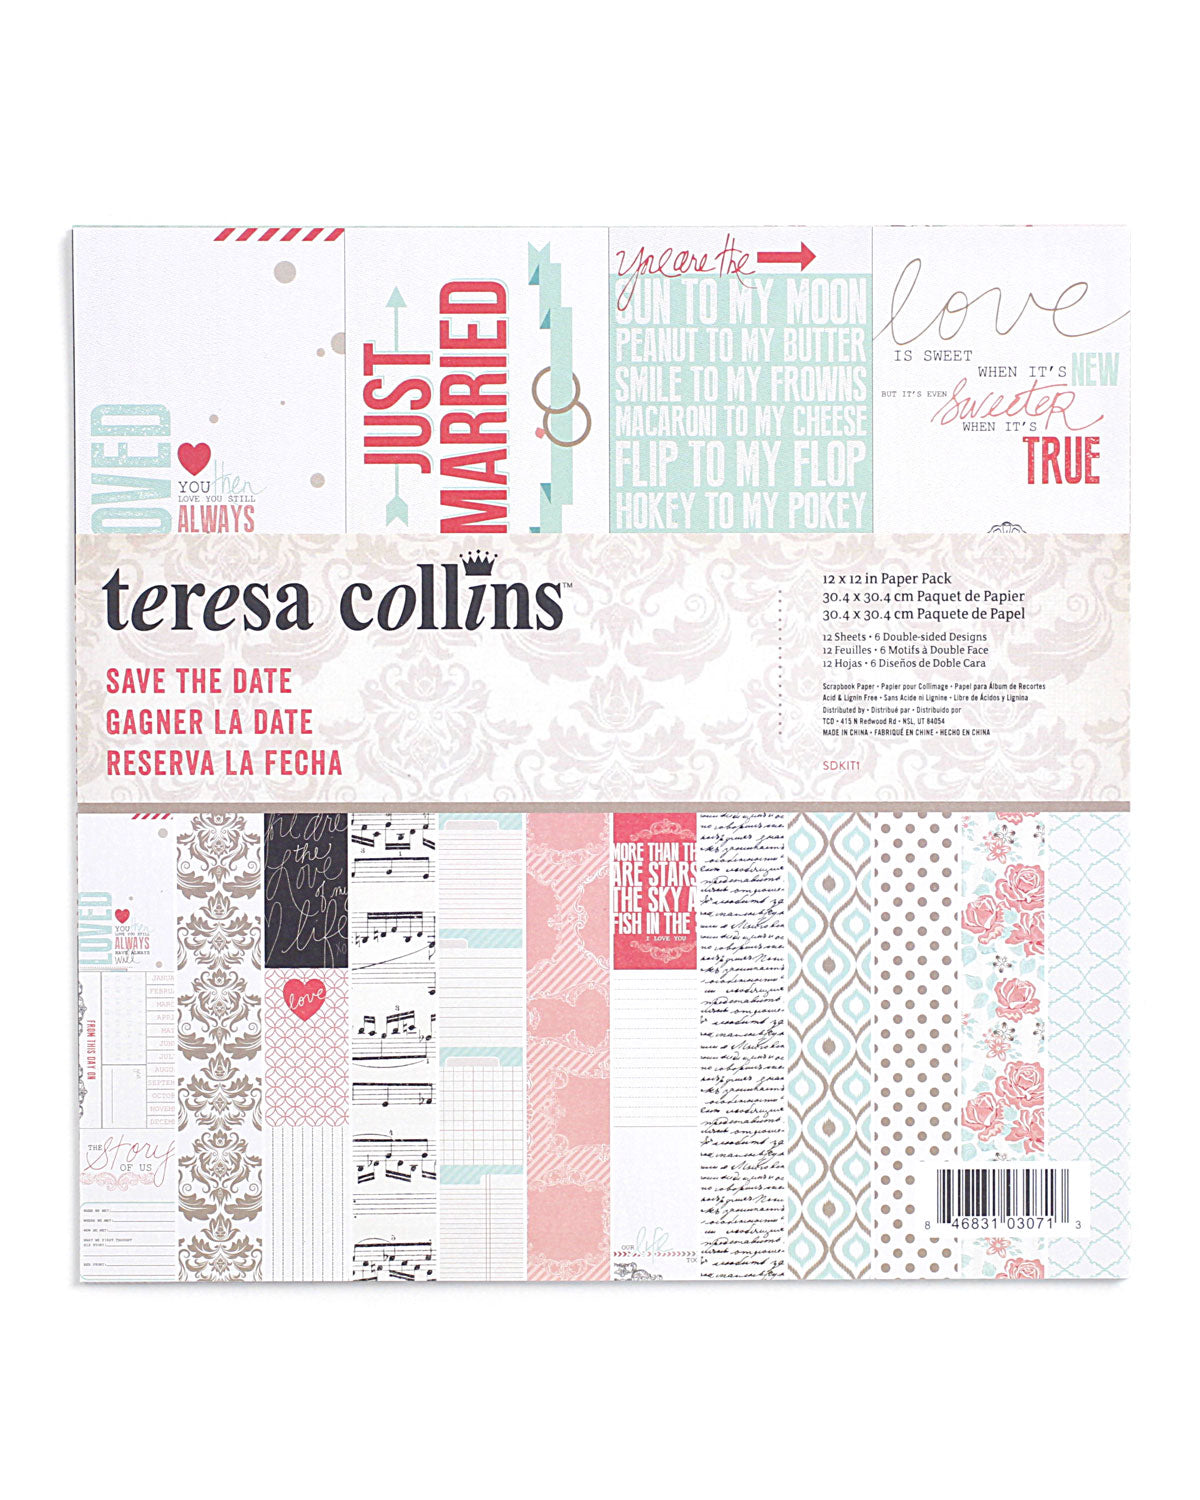 Save the Date 12 x 12 Paper Pack